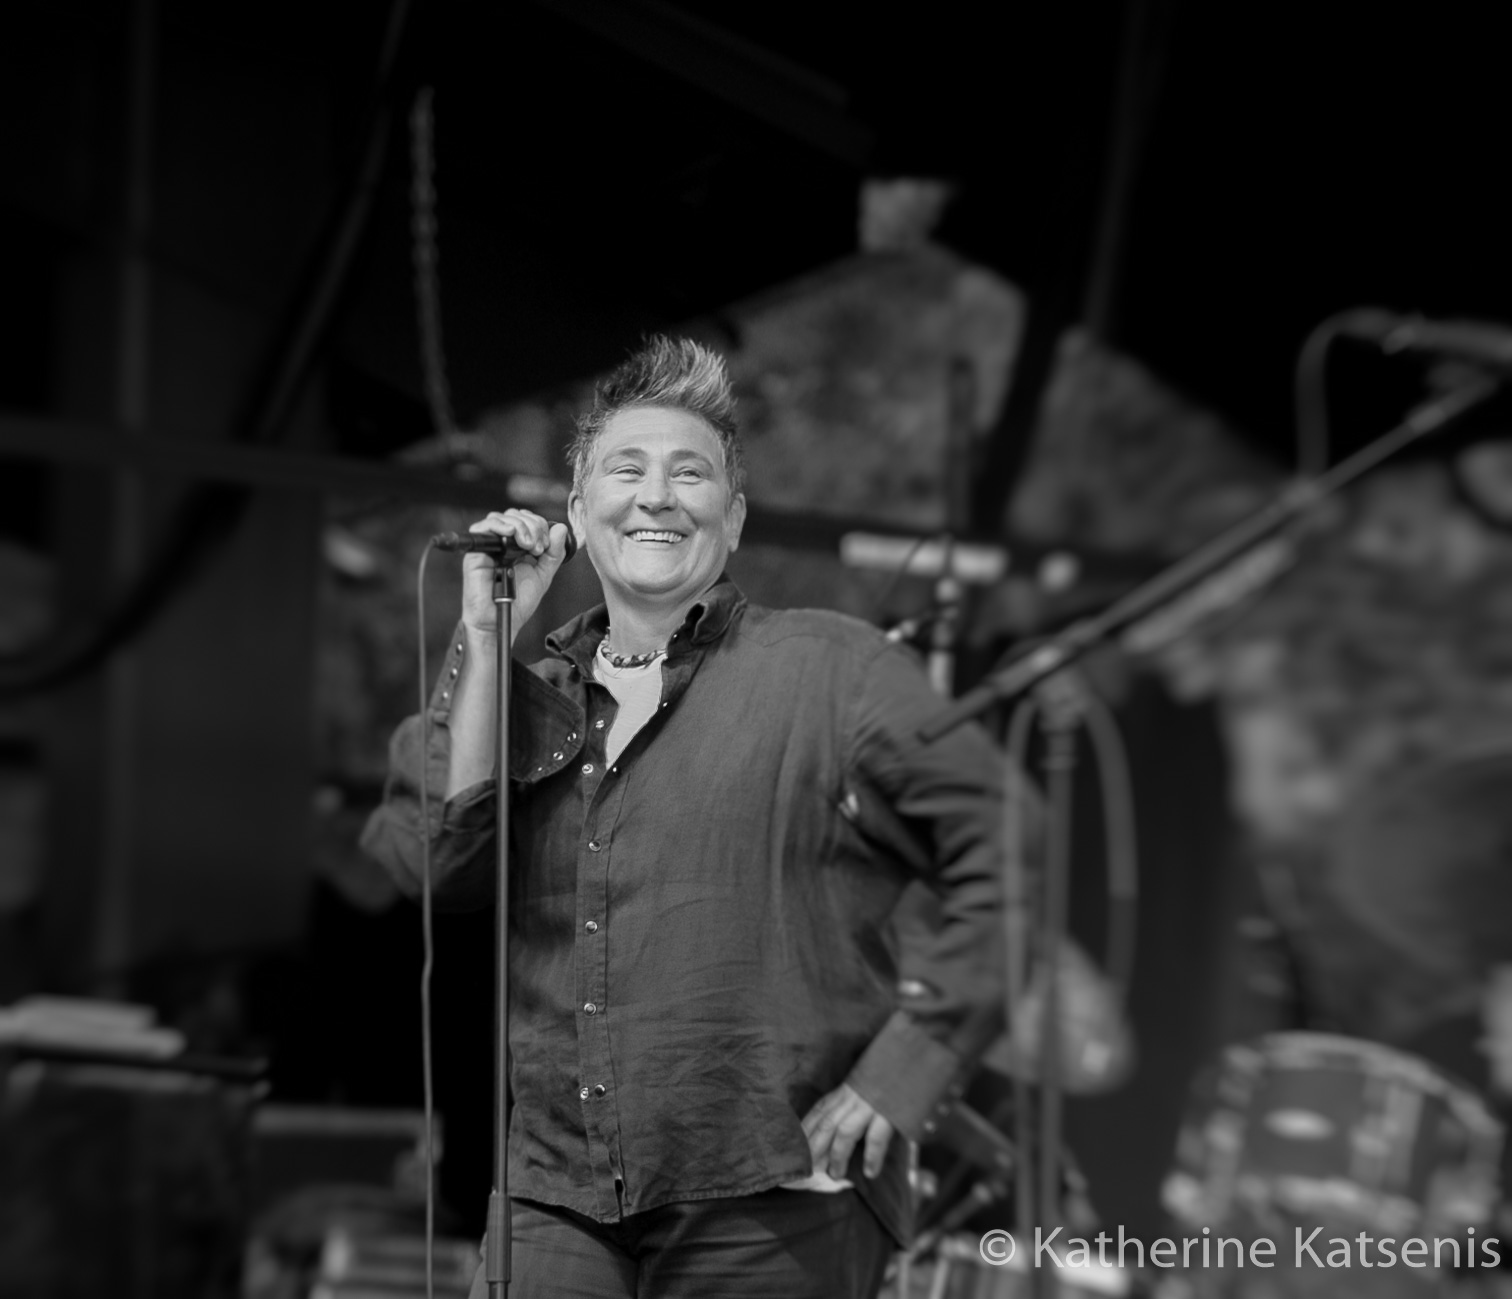 k.d. lang at Salt Lake City, Utah